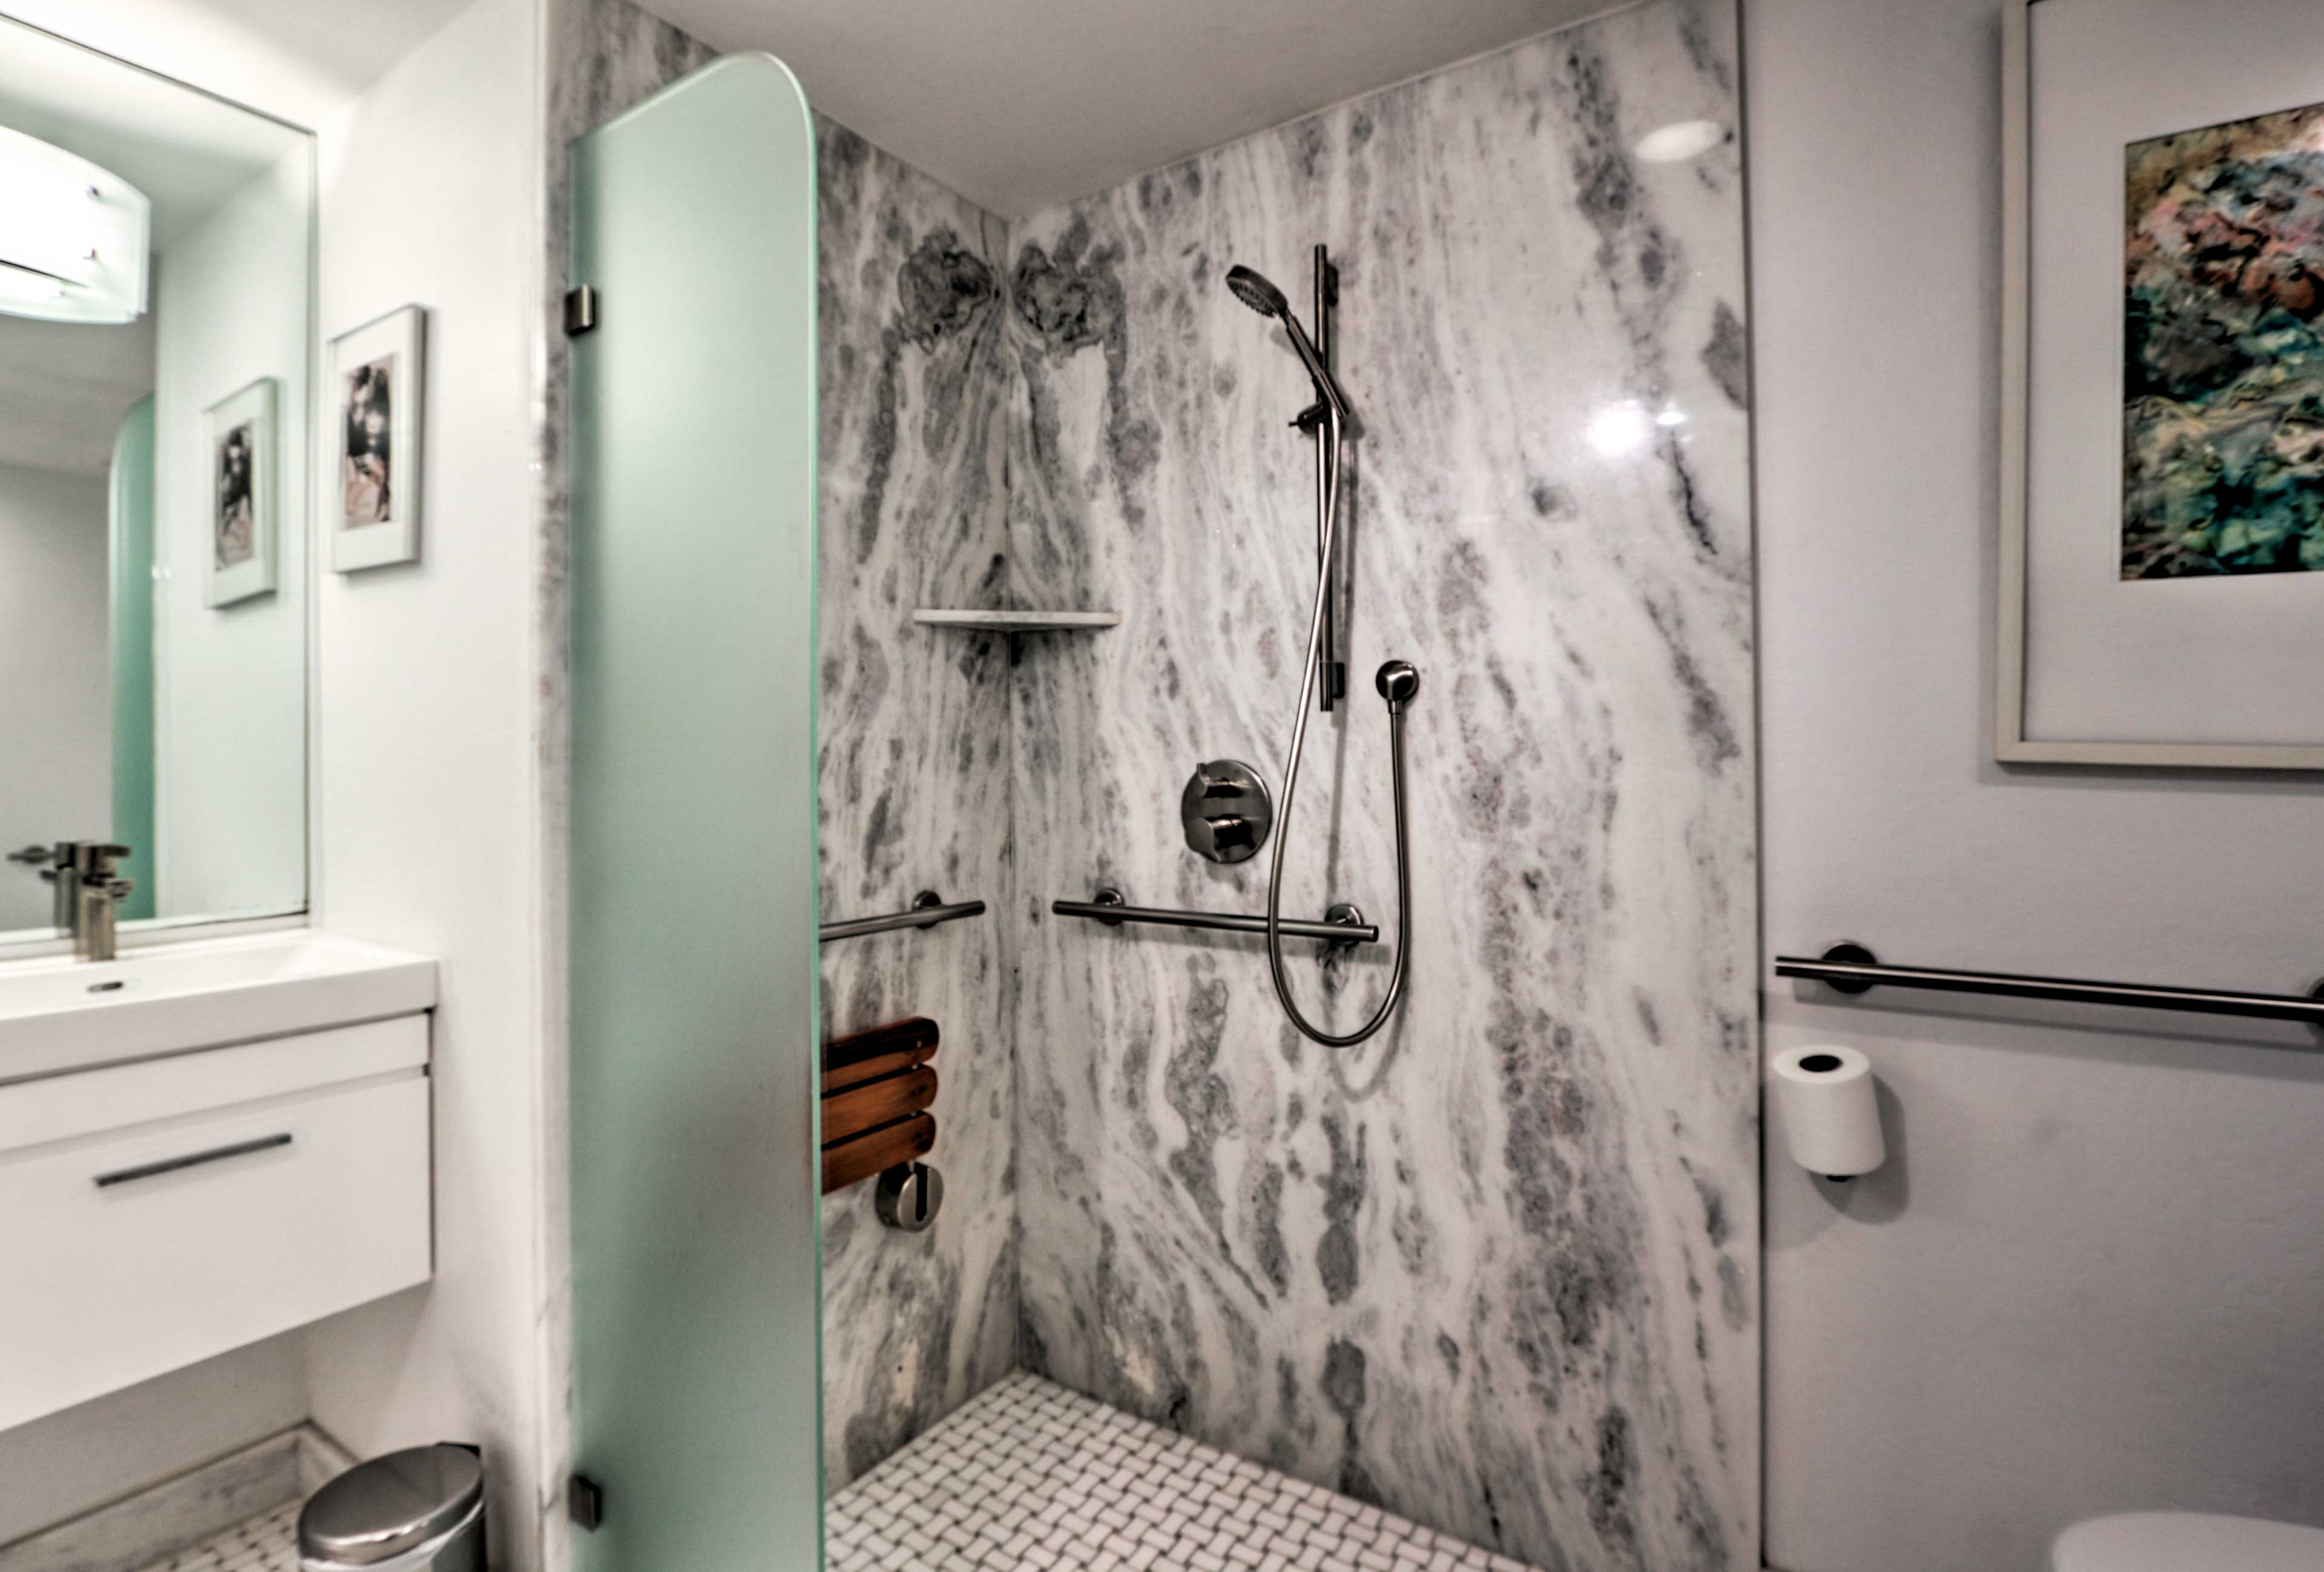 There's even a convenient walk-in shower with bench seating.